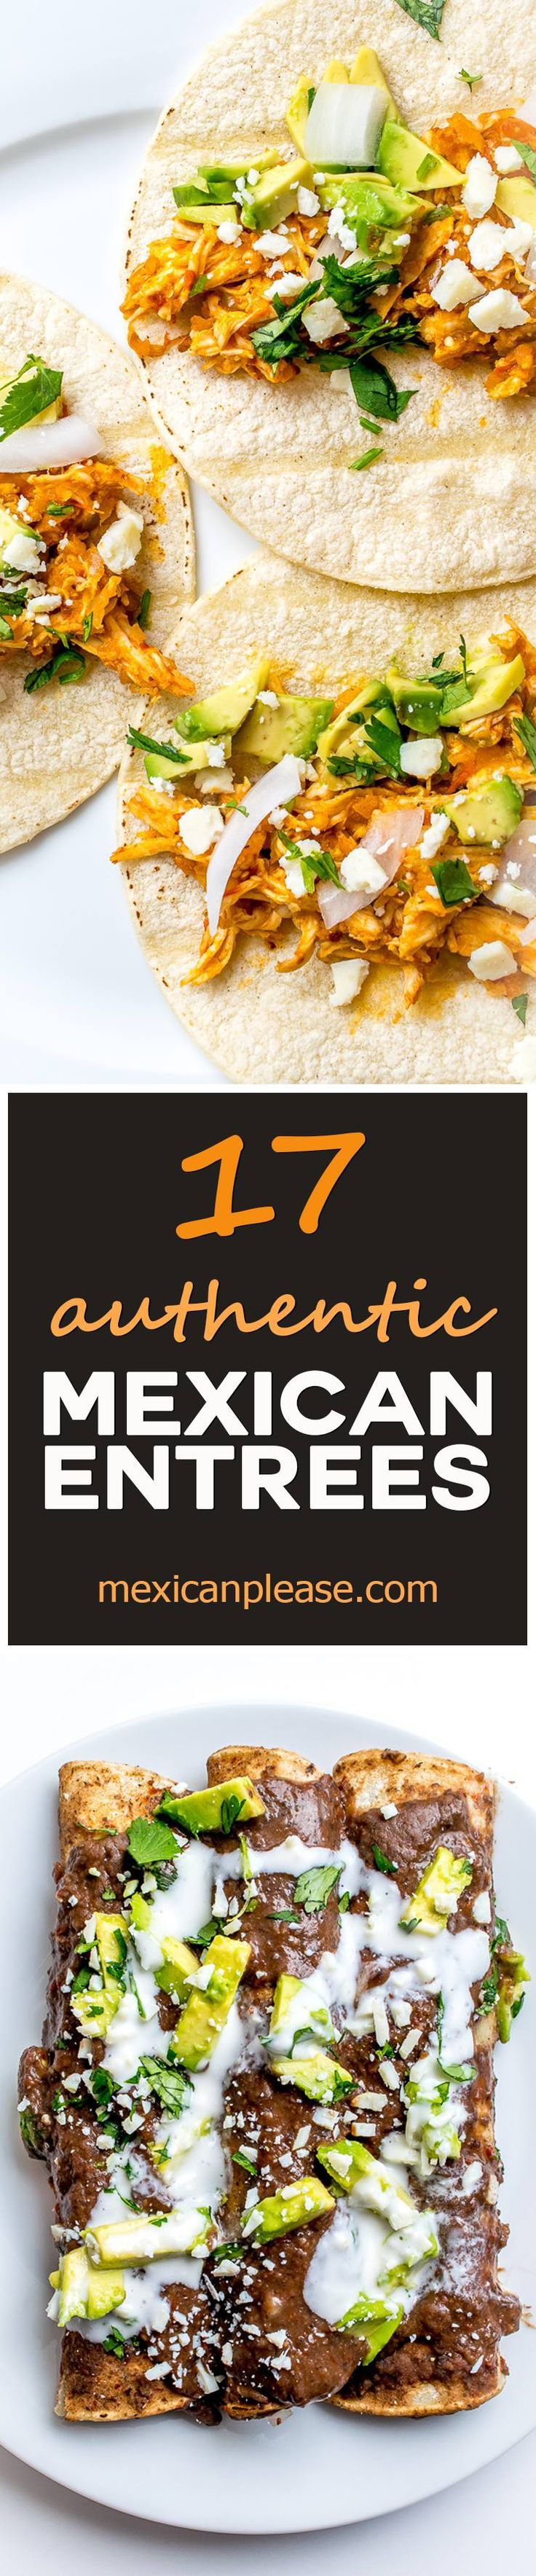 Ready for a kitchen swap? Here are 17 authentic Mexican entrees capable of instantly livening up any home kitchen. Scan through the list and mark down the two or three dishes that really catch your eye.  Includes recipes for enchiladas, mole, ceviche, tacos, and more!  http://mexicanplease.com